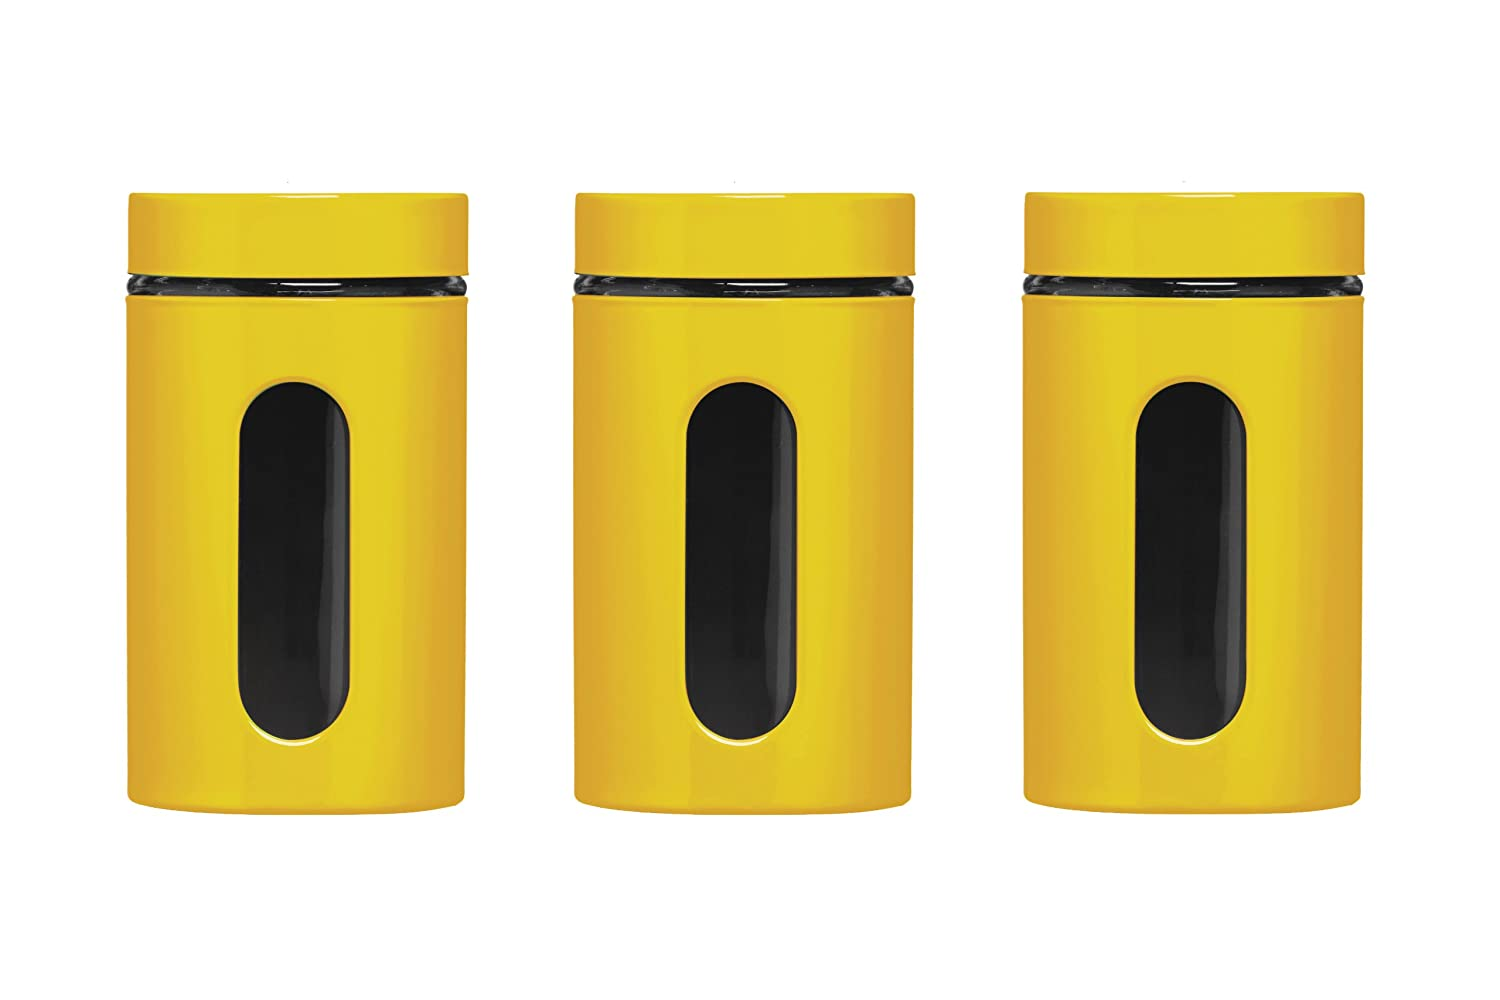 Premier Housewares Storage Canisters   Yellow, Set Of 3: Amazon.co.uk:  Kitchen U0026 Home